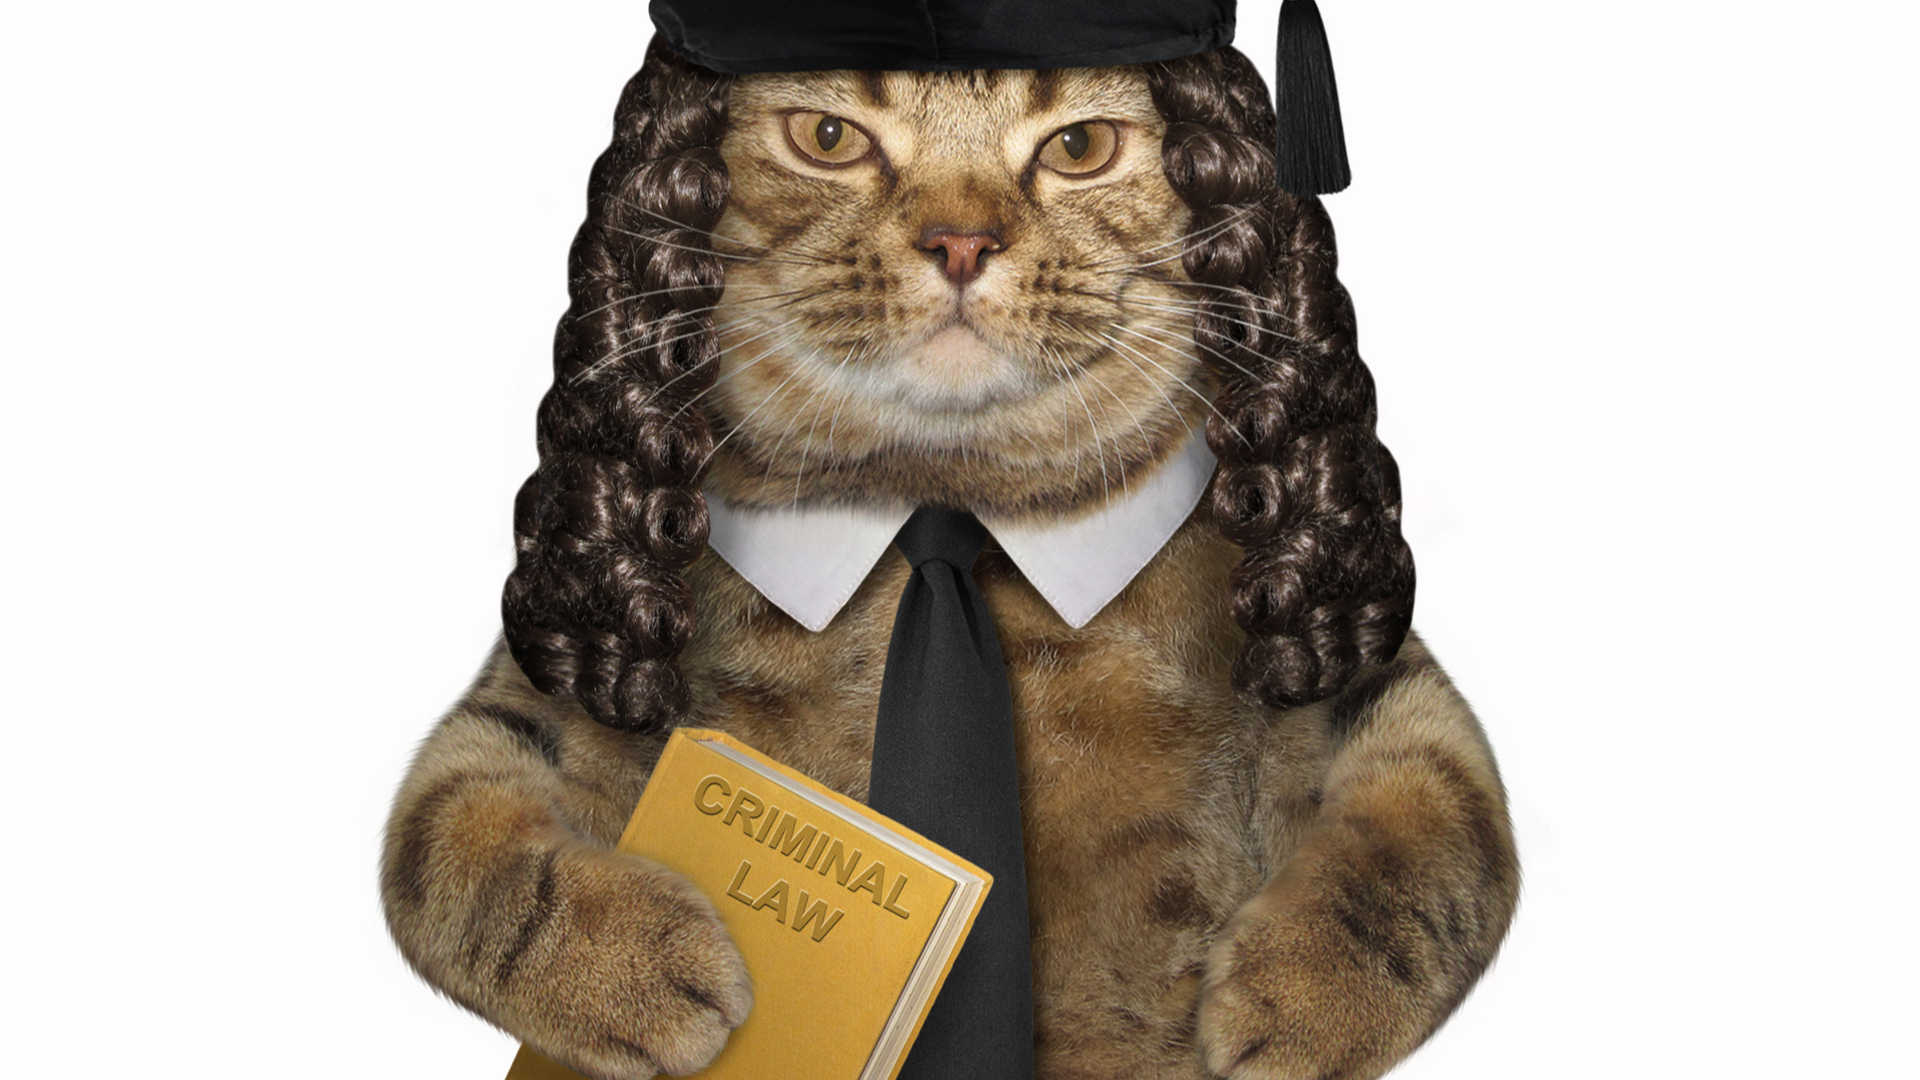 Cat judge